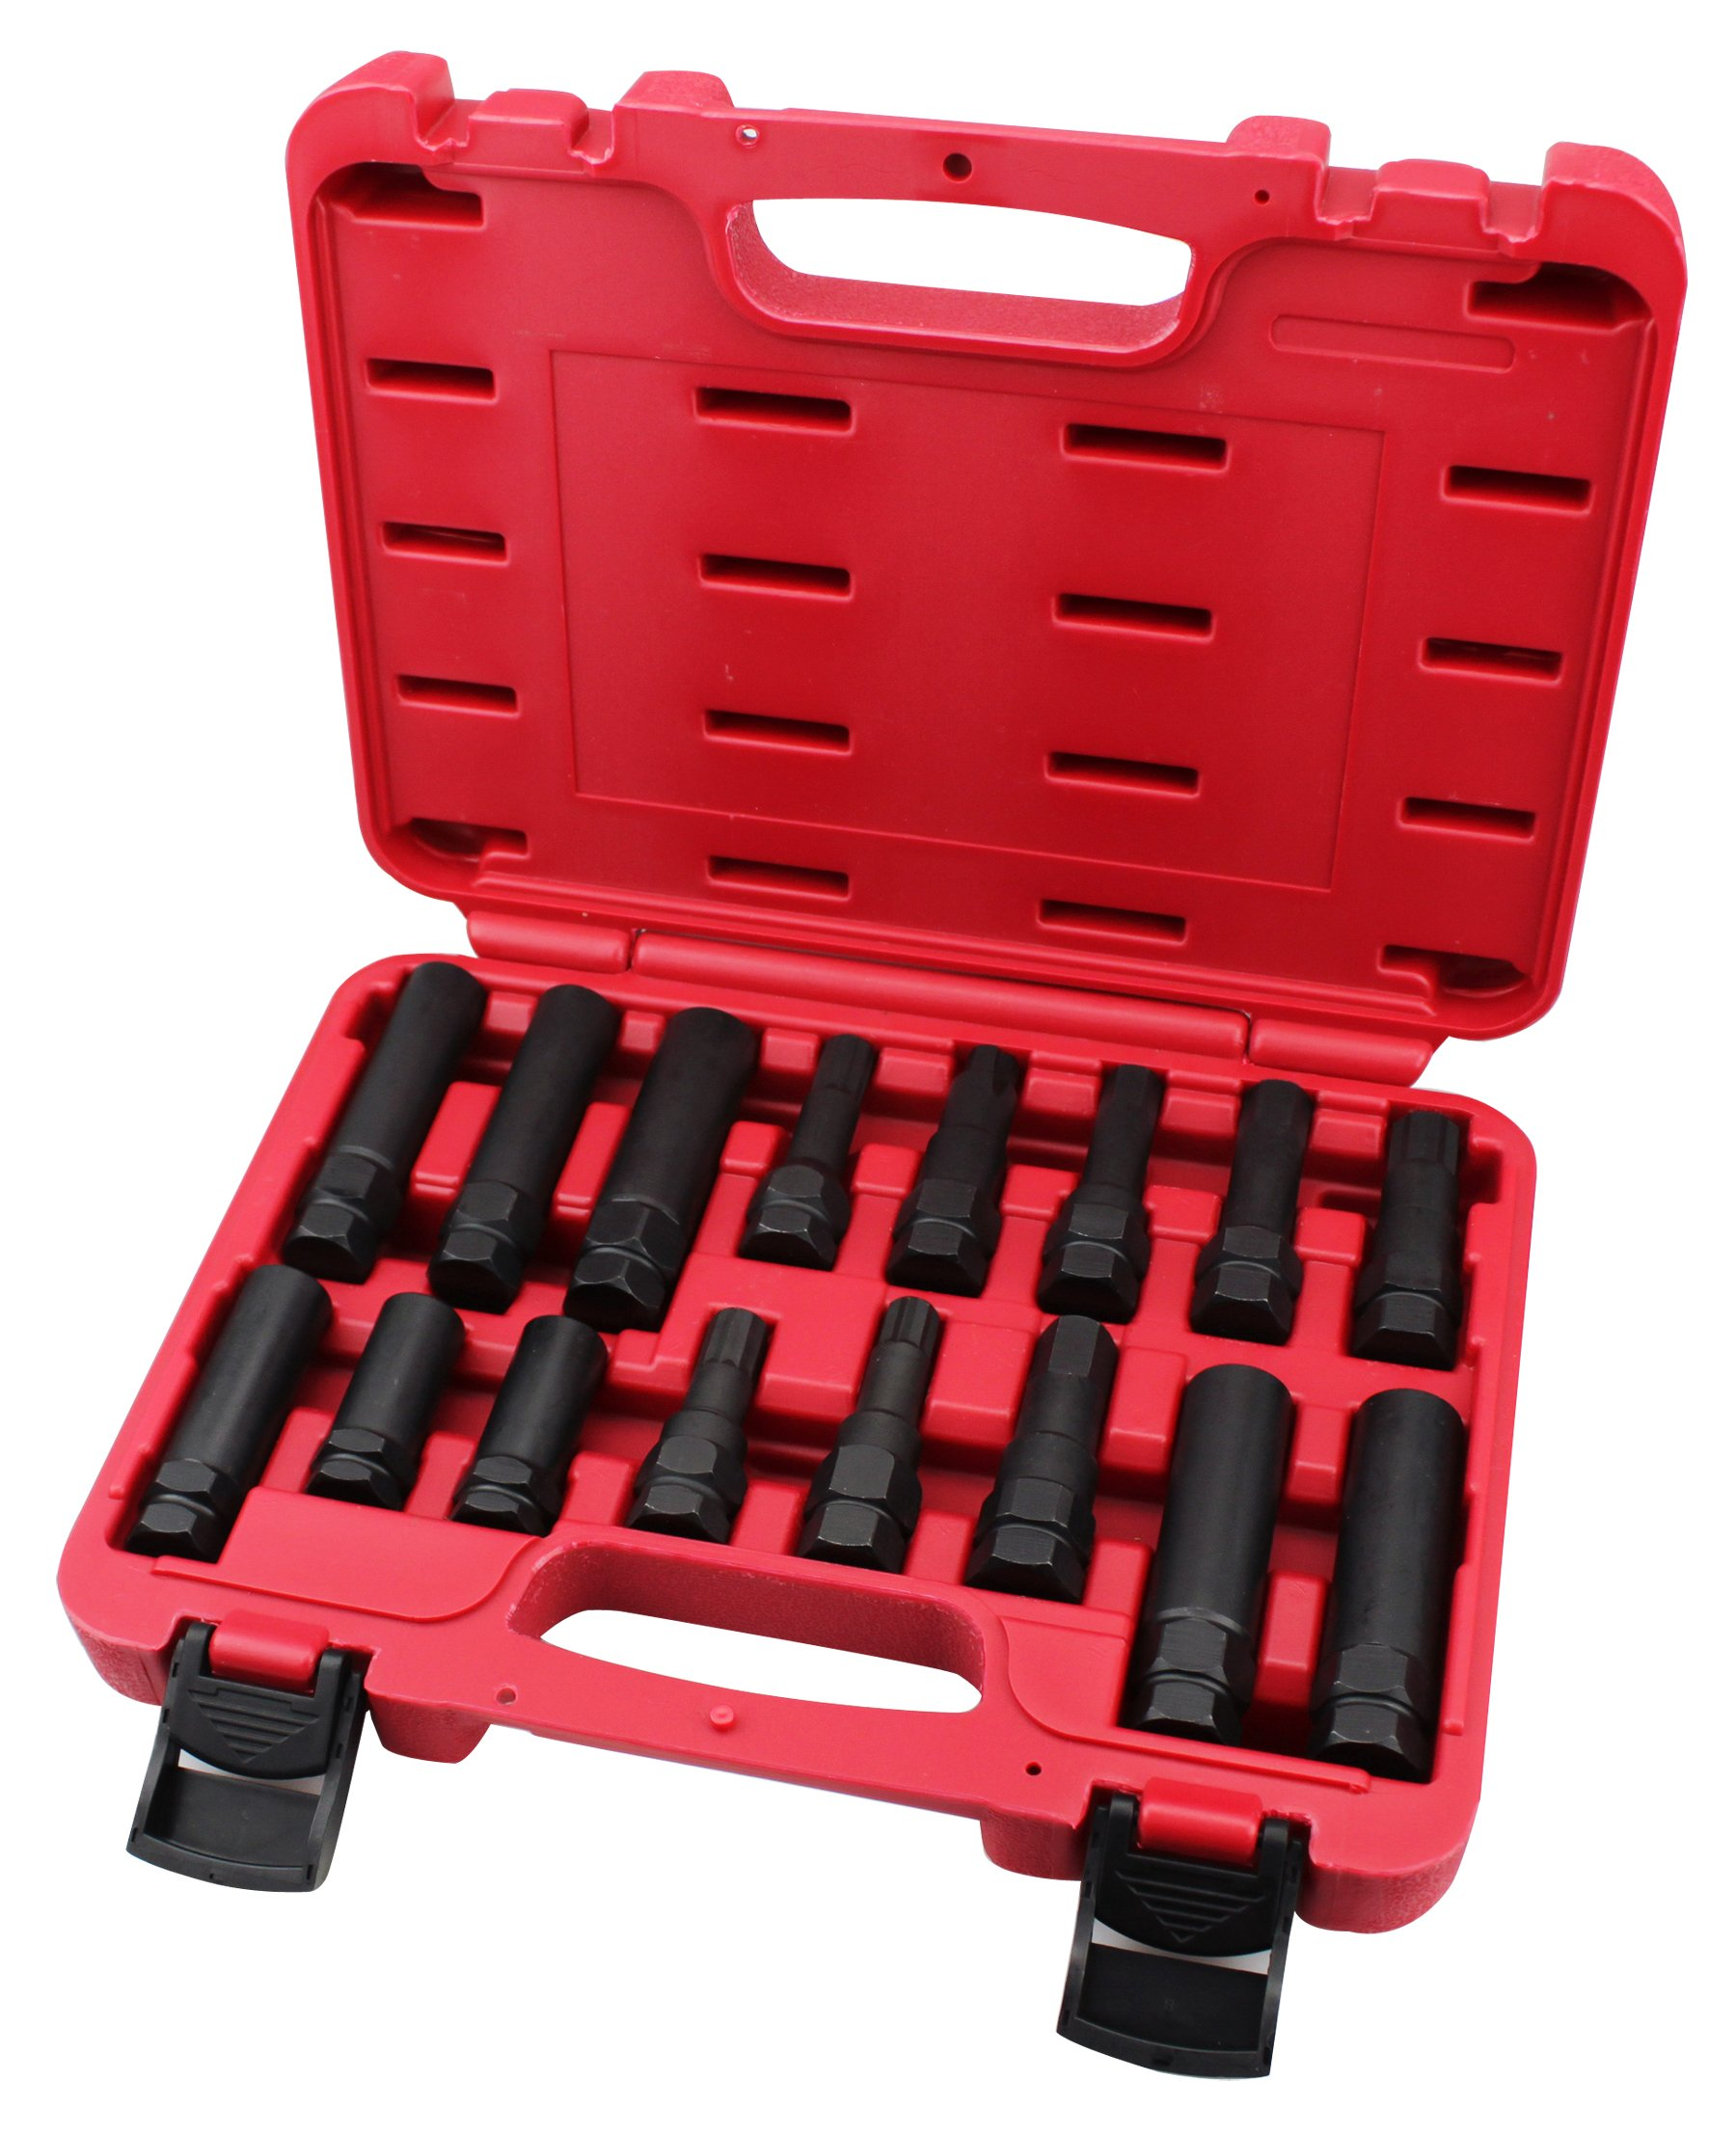 kauplus 16PCS Wheel Locking Lug Master Key Set- Wheel Lock Lug Nut Master Key Set by kauplus (Image #1)